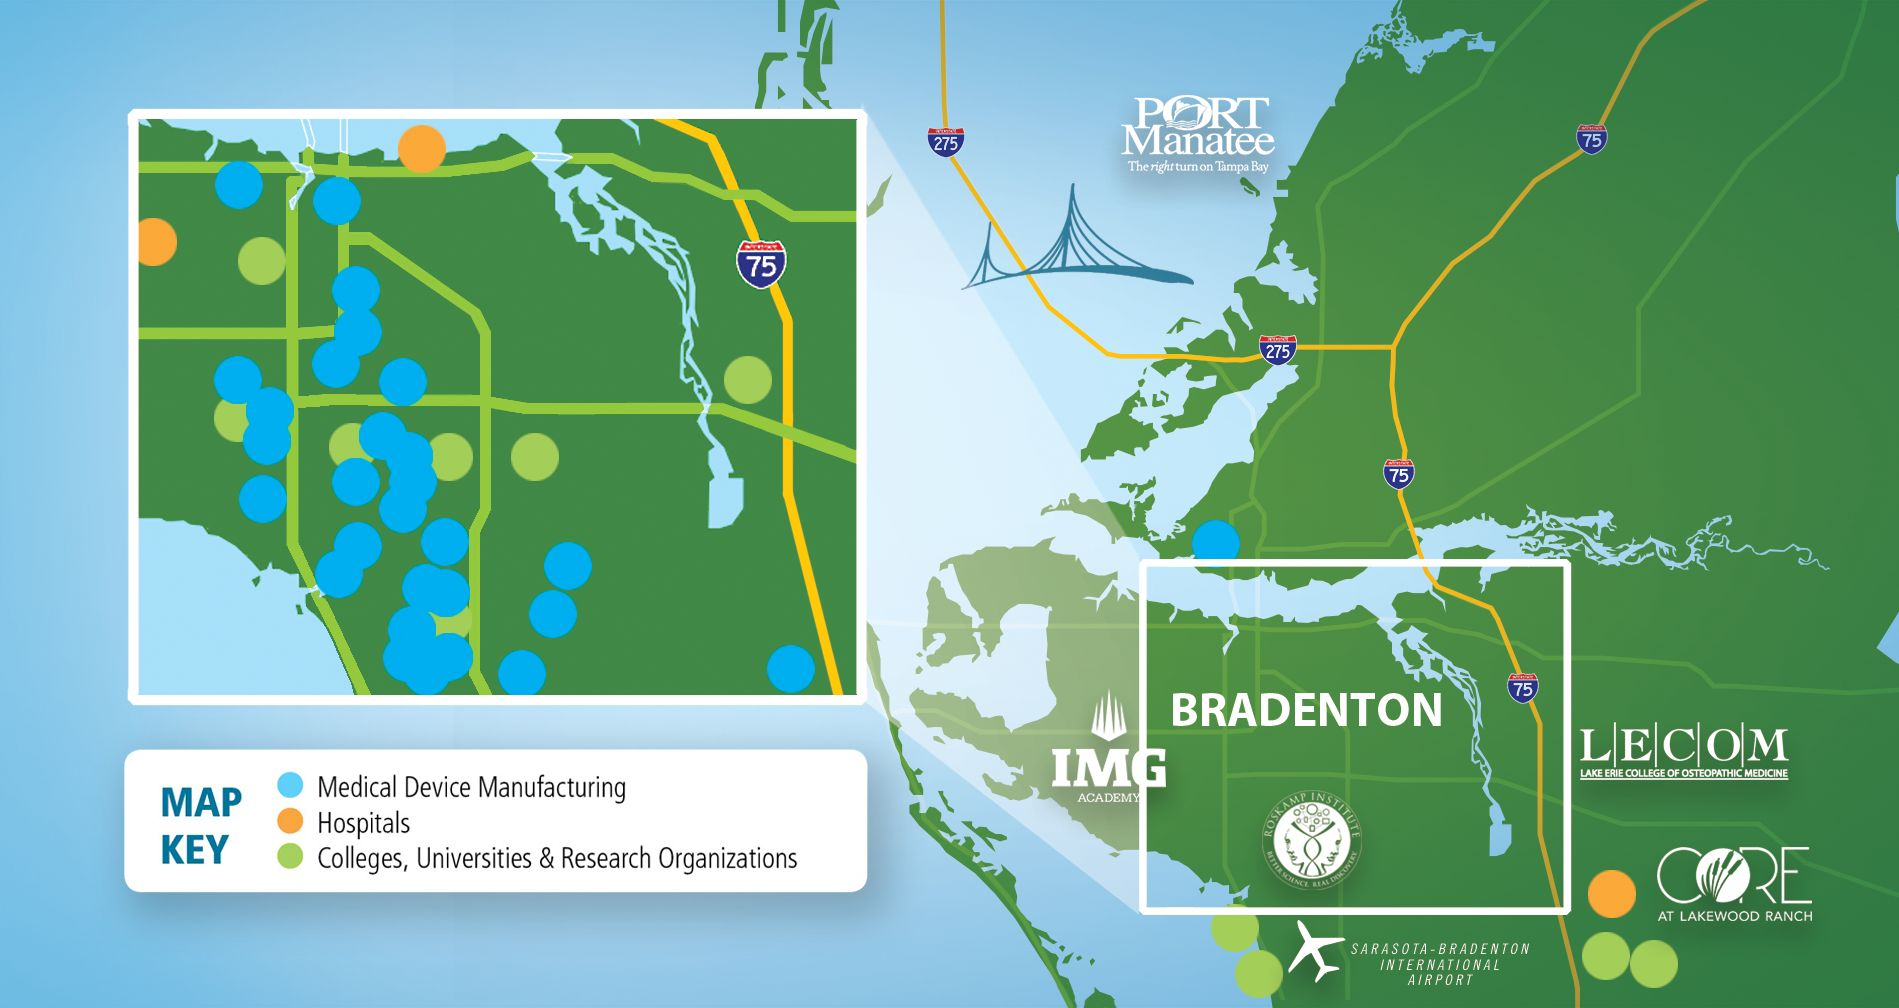 Bradenton Area map of Life Sciences Facilities